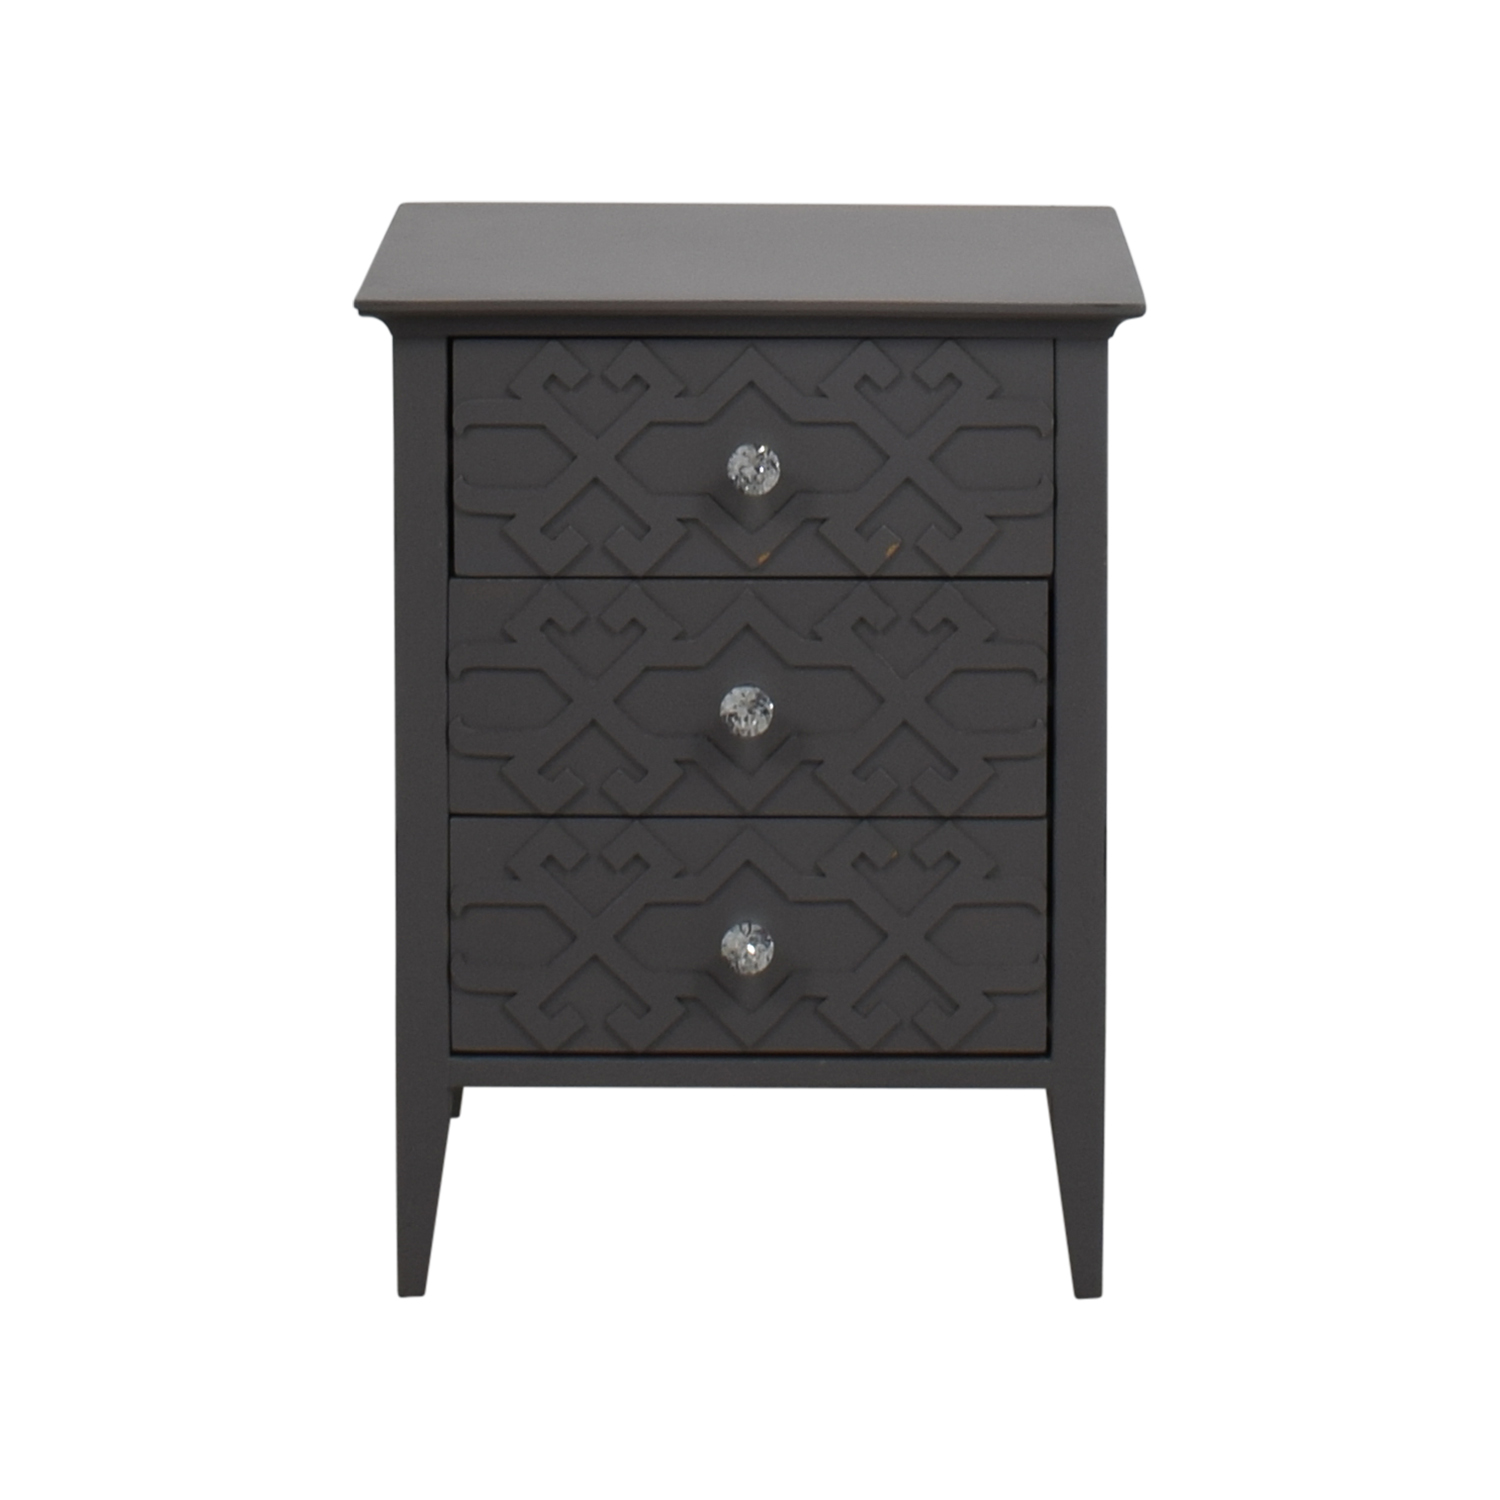 chest your for drawers furniture nightstand mirrored sale cheap dresser tall hemnes drawer design plans ikea dressers clairmonte bedroom bestdressers interior target of